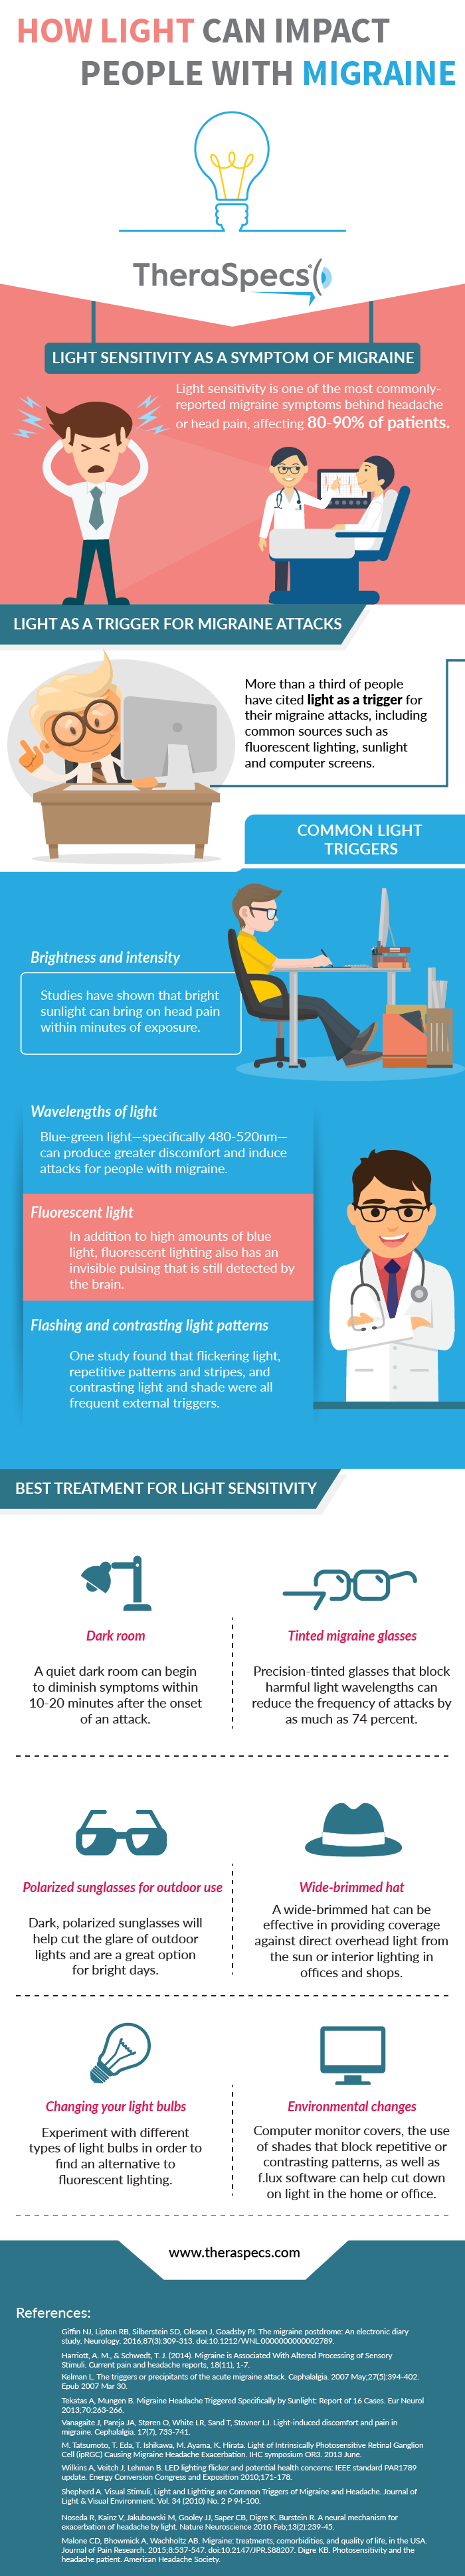 How Light Impacts People with Migraine Infographic